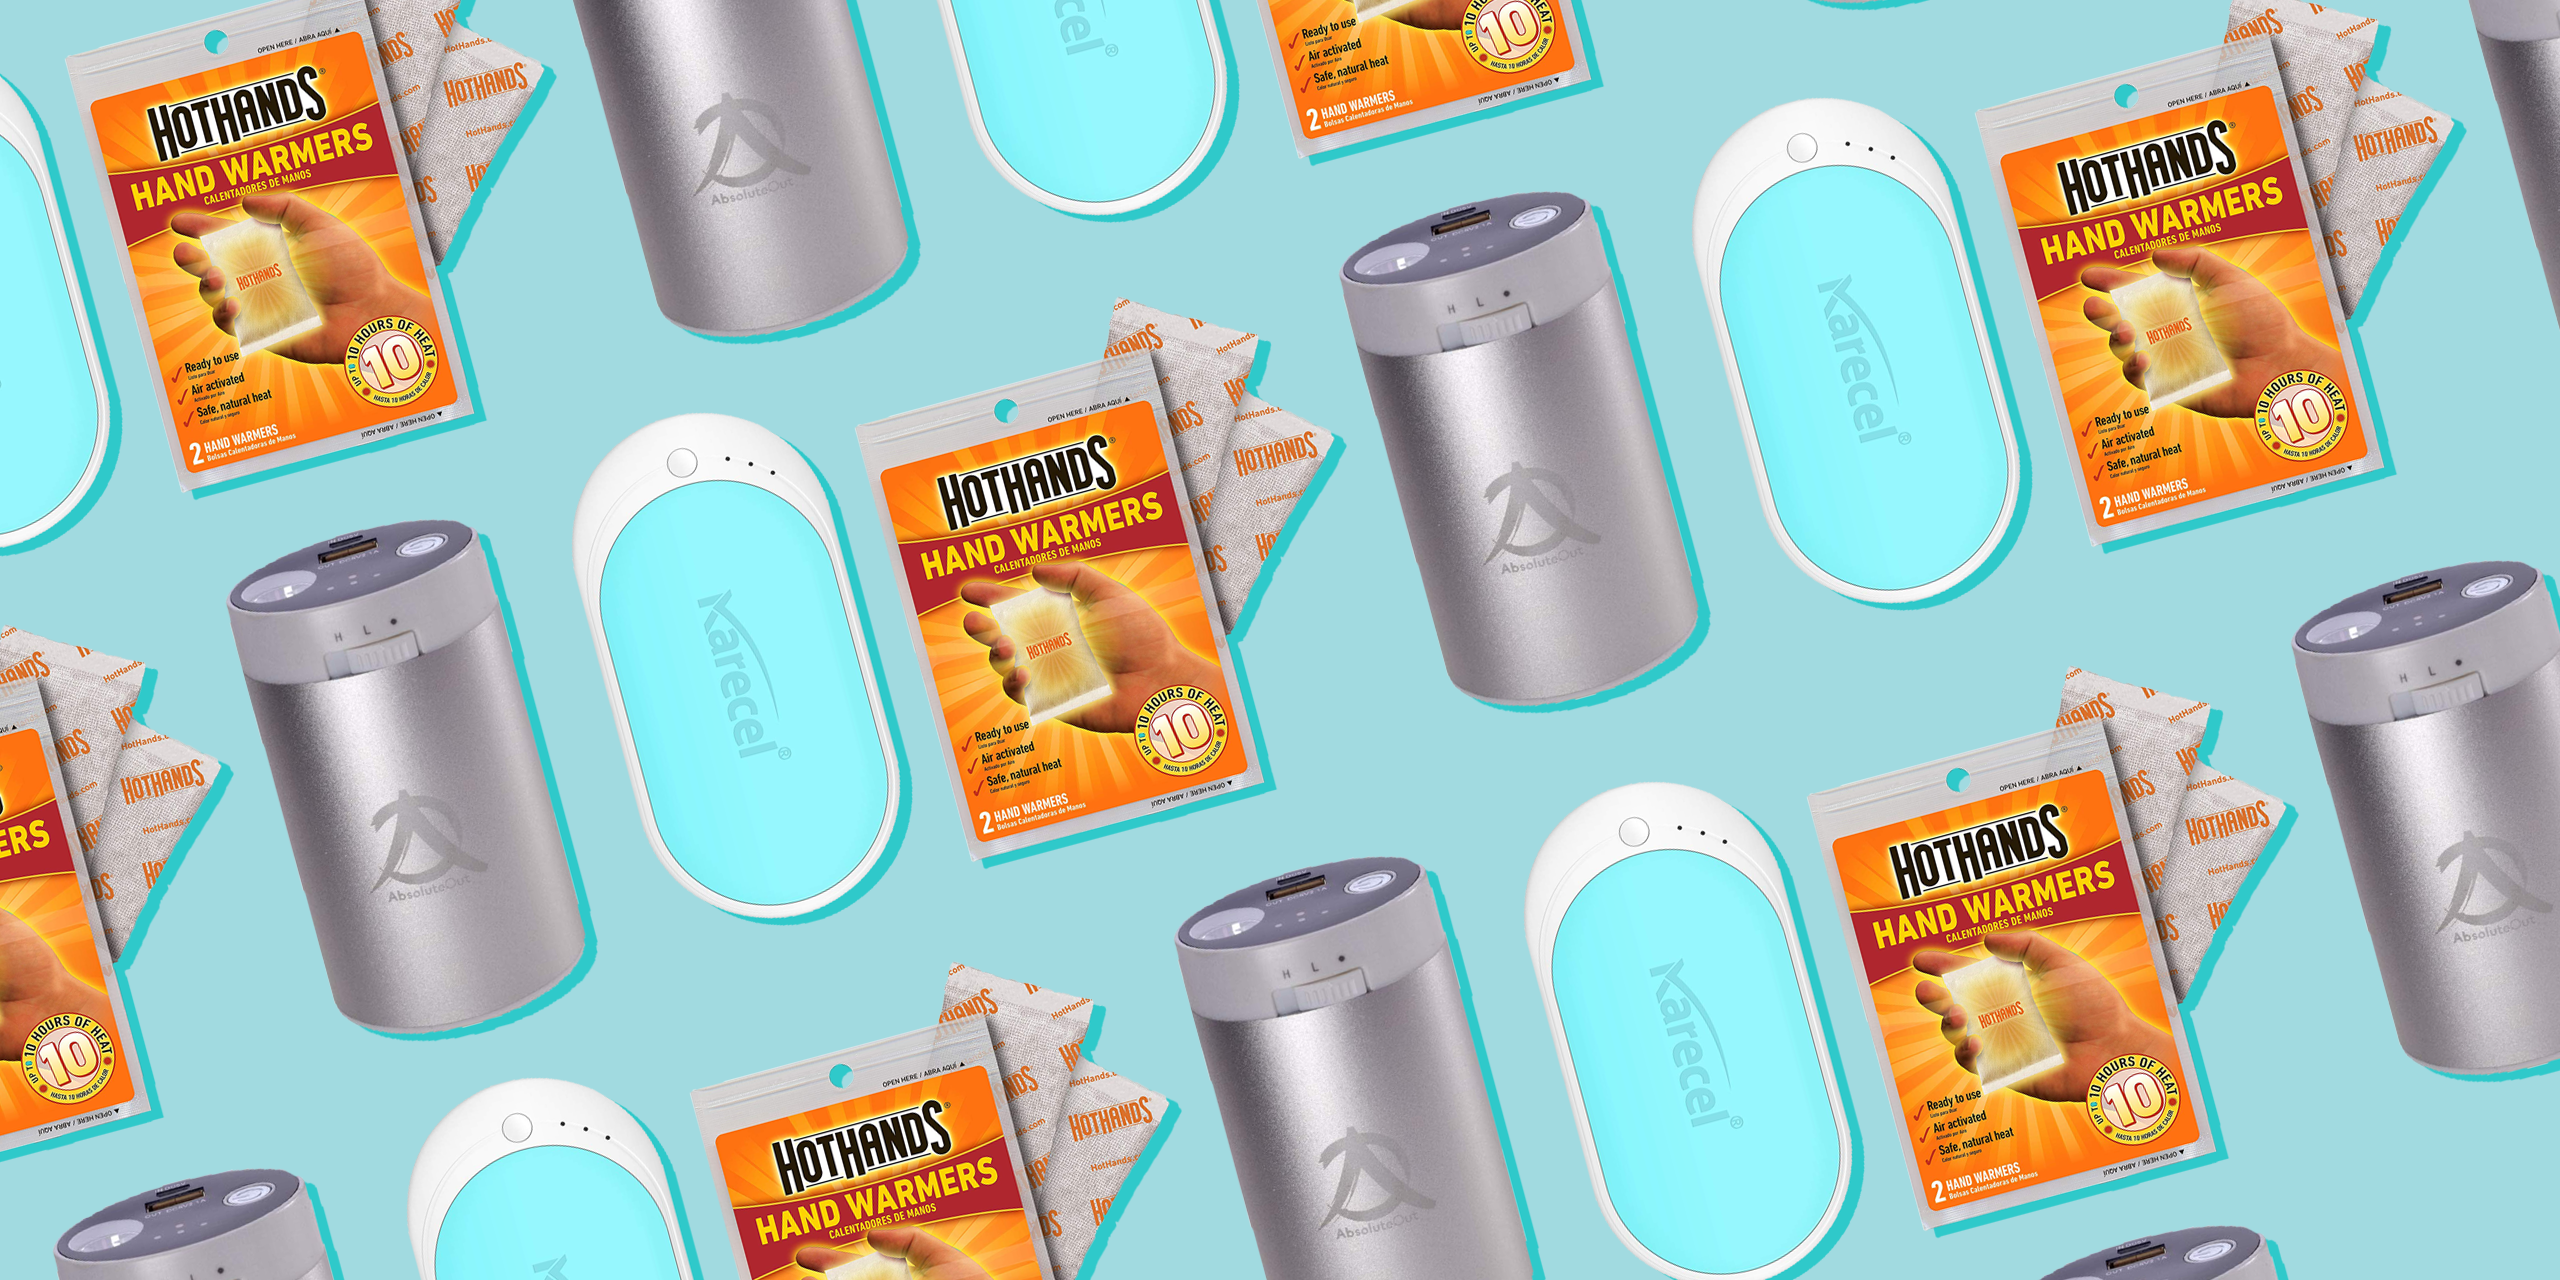 6 Best Hand Warmers to Buy in 2020, According to Reviews